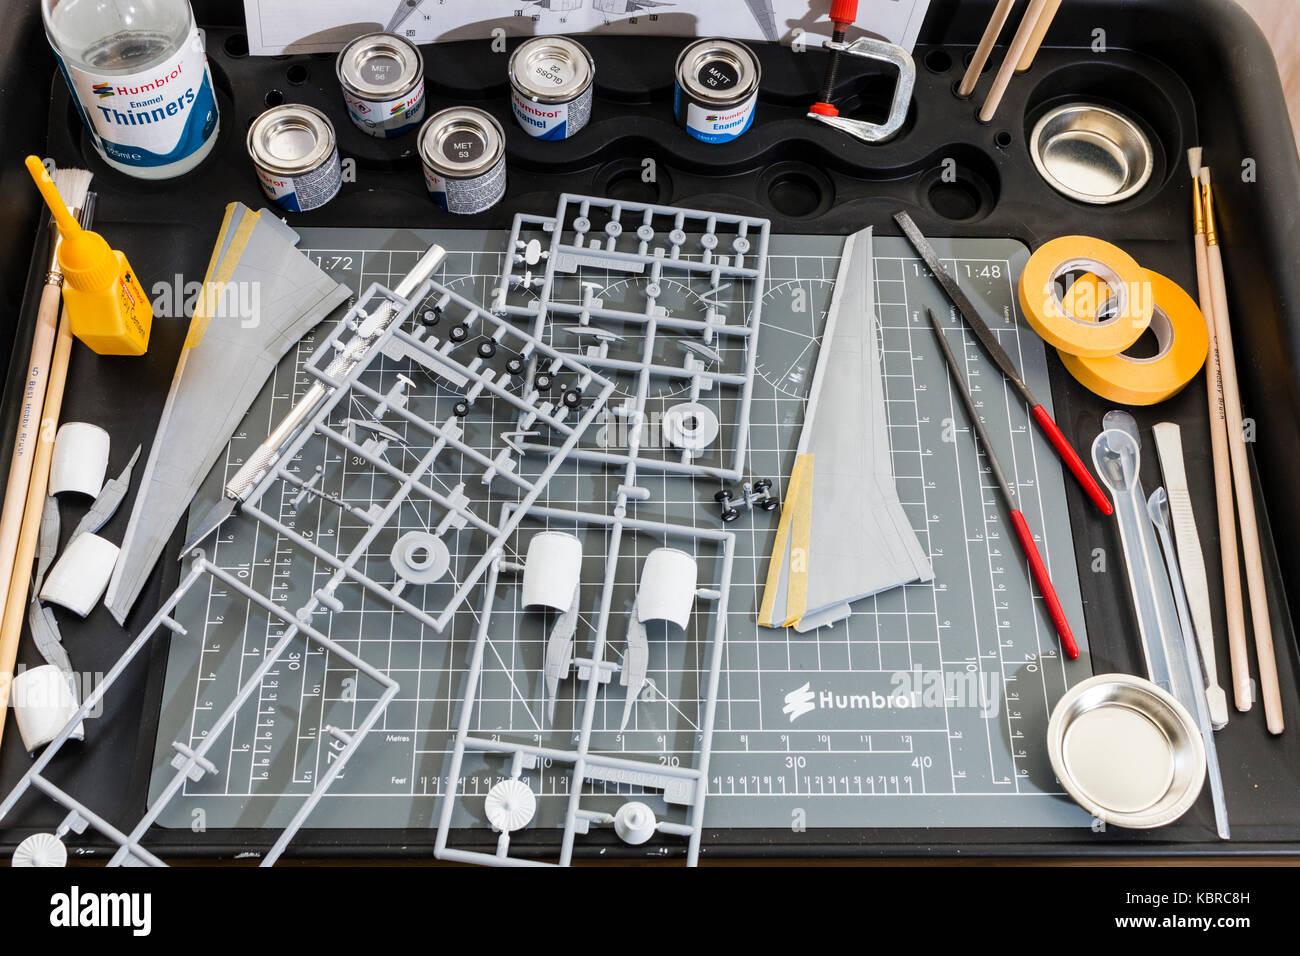 England. Modelling station with cutting mat, paint pots, tools, maskign tape. Spur of airplane parts, and plane - Stock Image